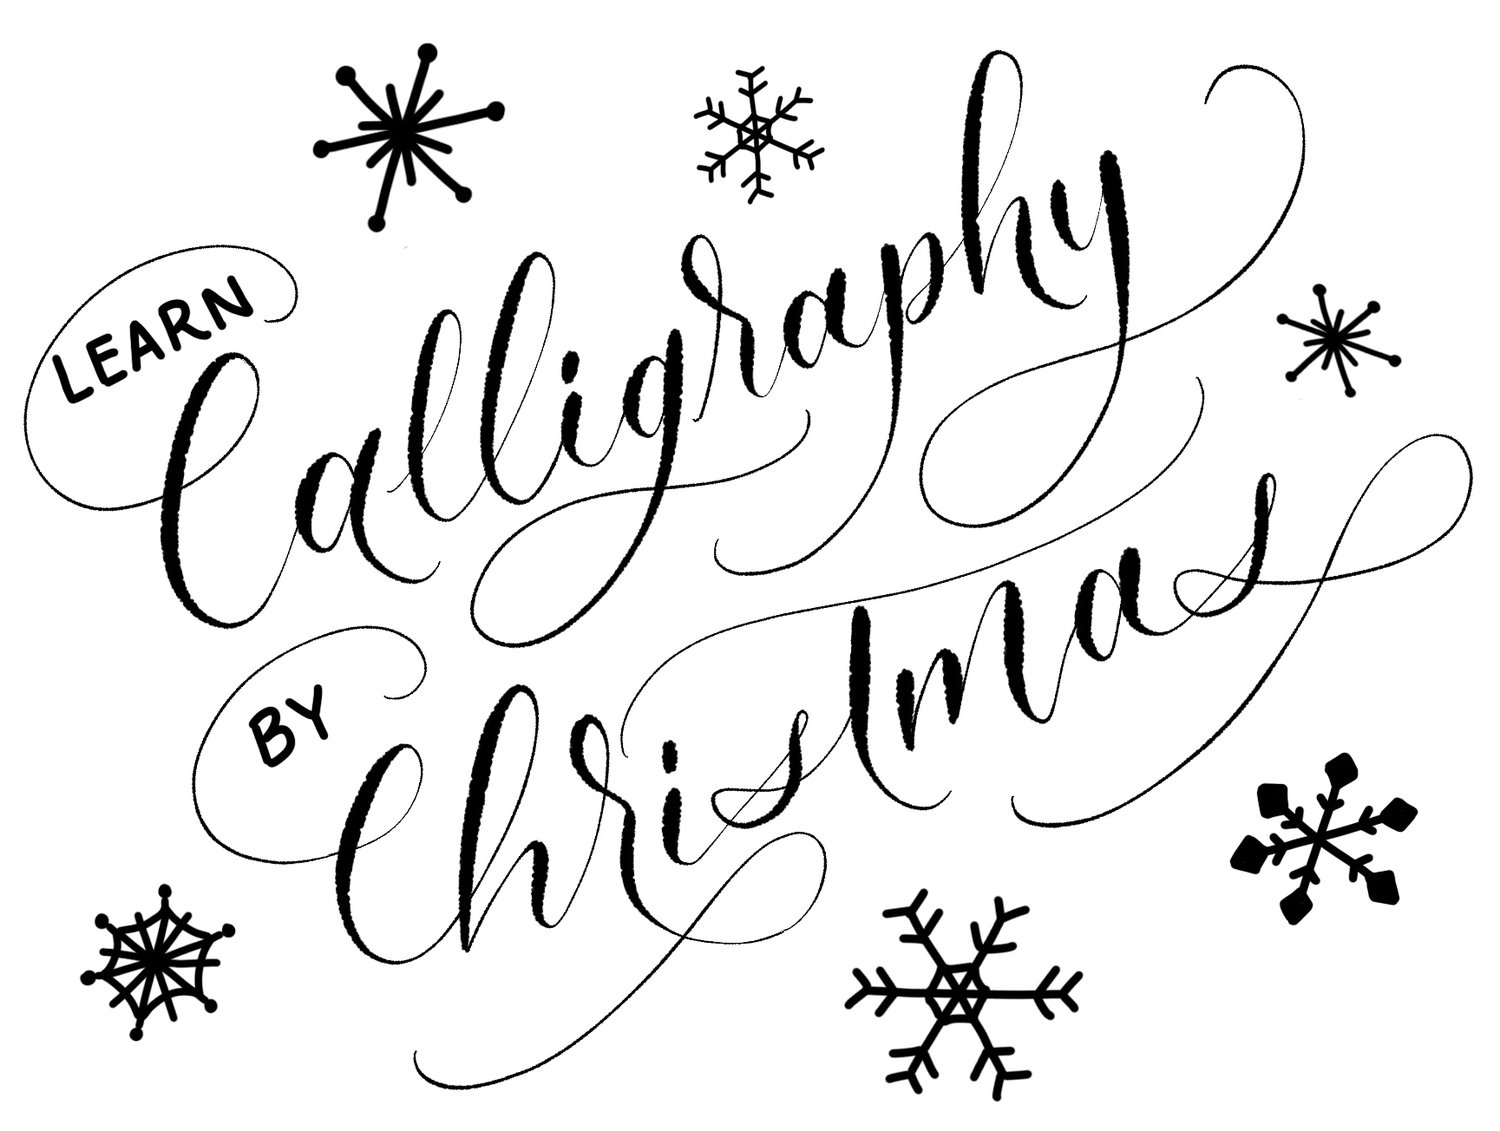 Christmas Calligraphy.Calligraphy By Christmas Crooked Calligraphy